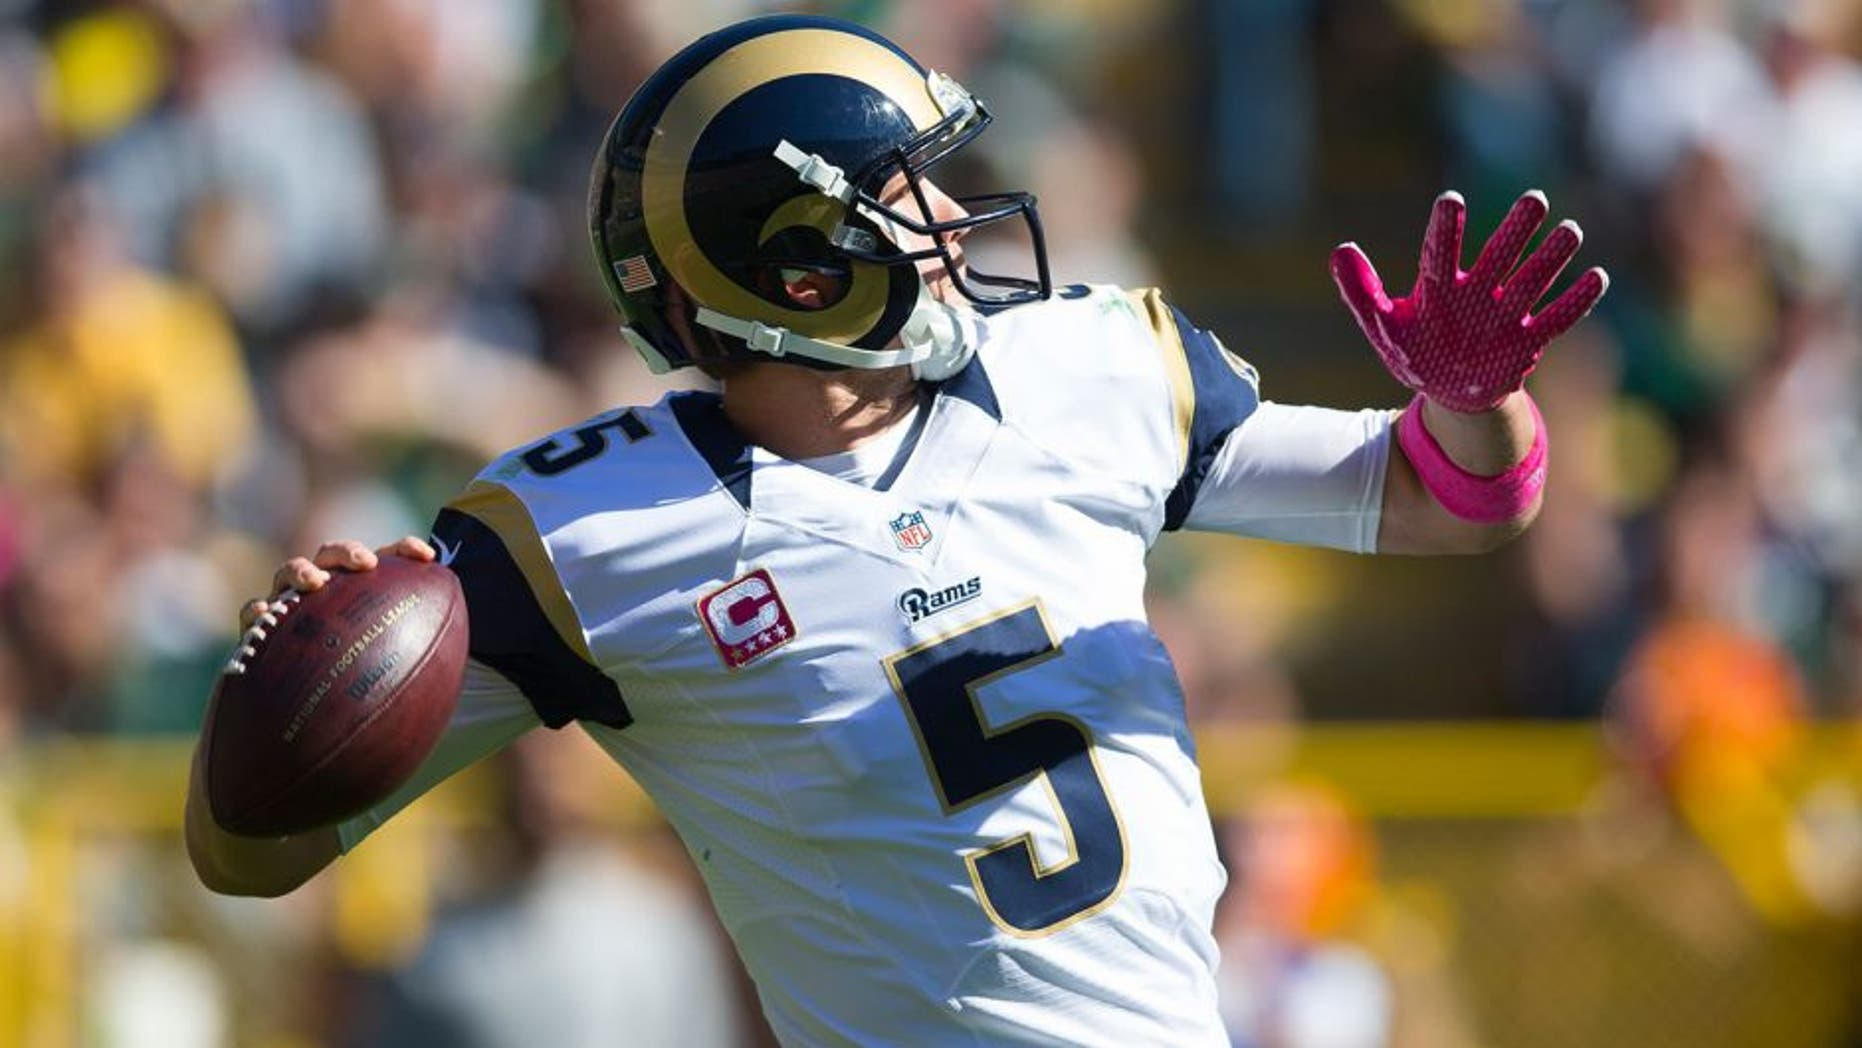 Oct 11, 2015; Green Bay, WI, USA; St. Louis Rams quarterback Nick Foles (5) throws a pass during the second quarter against the Green Bay Packers at Lambeau Field. Mandatory Credit: Jeff Hanisch-USA TODAY Sports